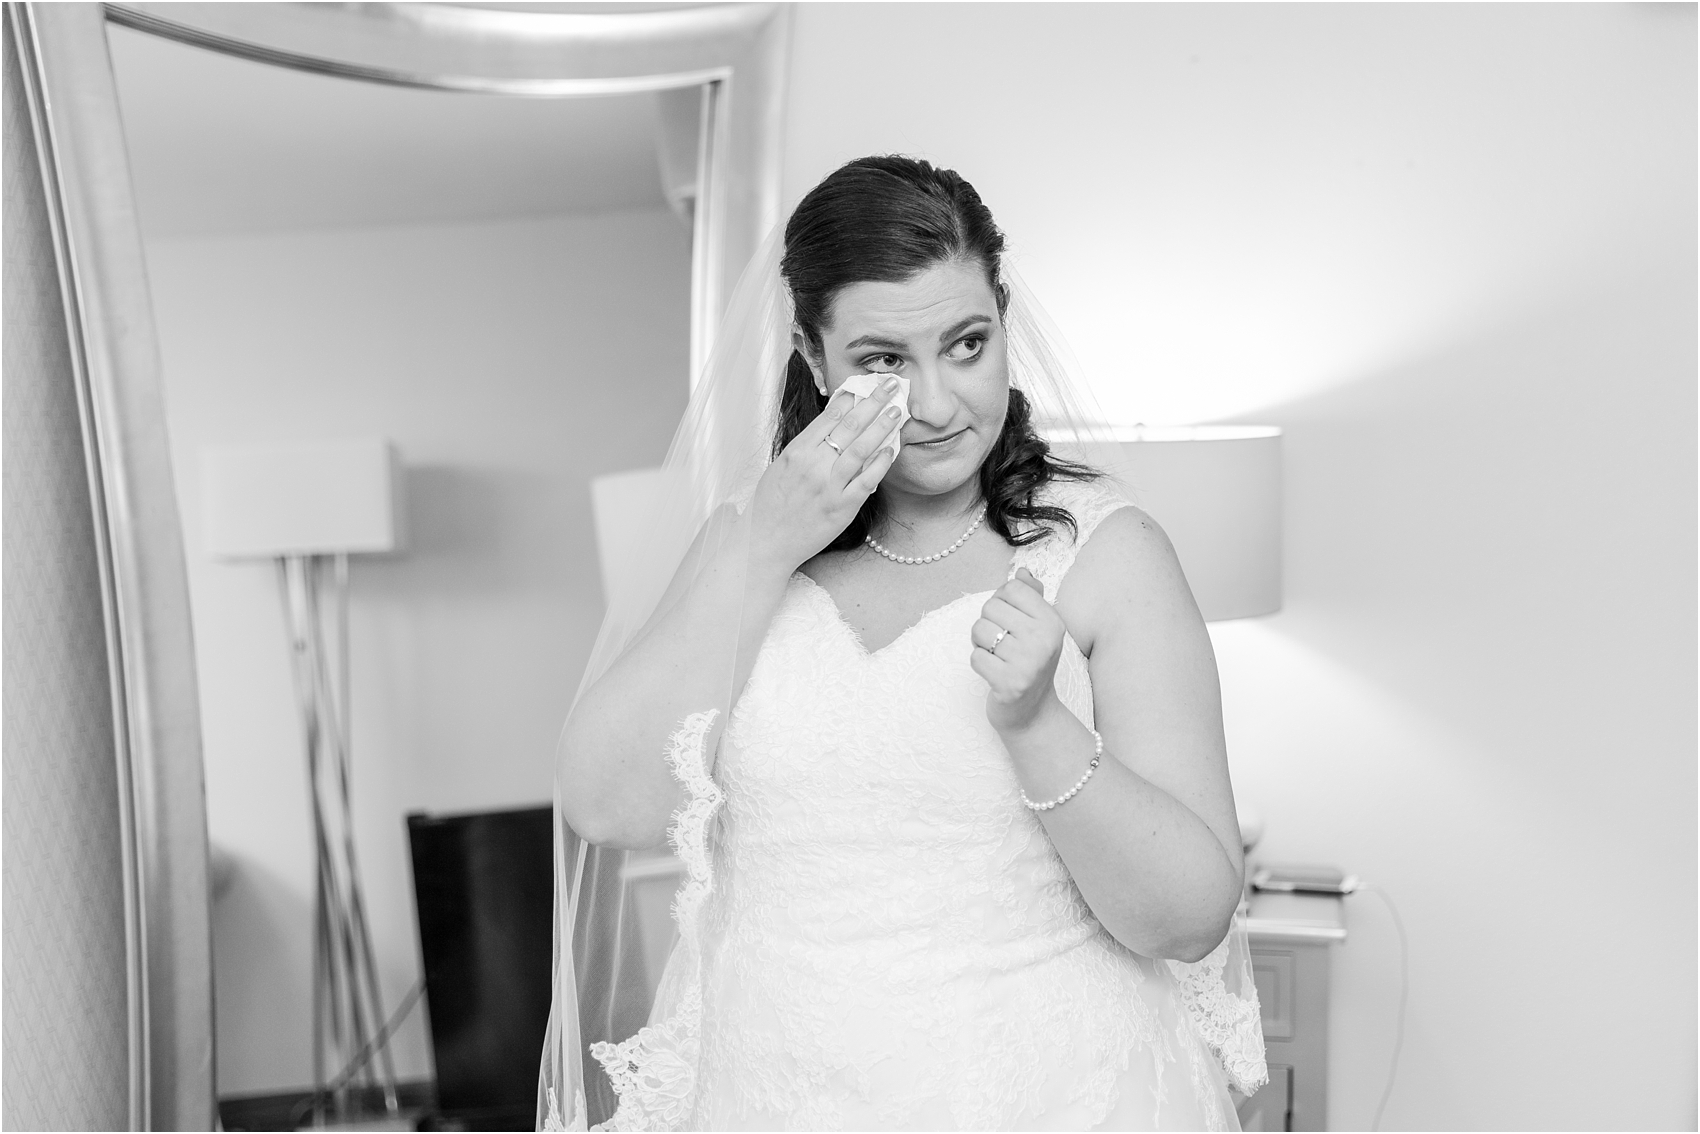 father-and-bride-share-emotional-first-look-on-wedding-day-photos-in-detroit-michigan-by-courtney-carolyn-photography_0078.jpg